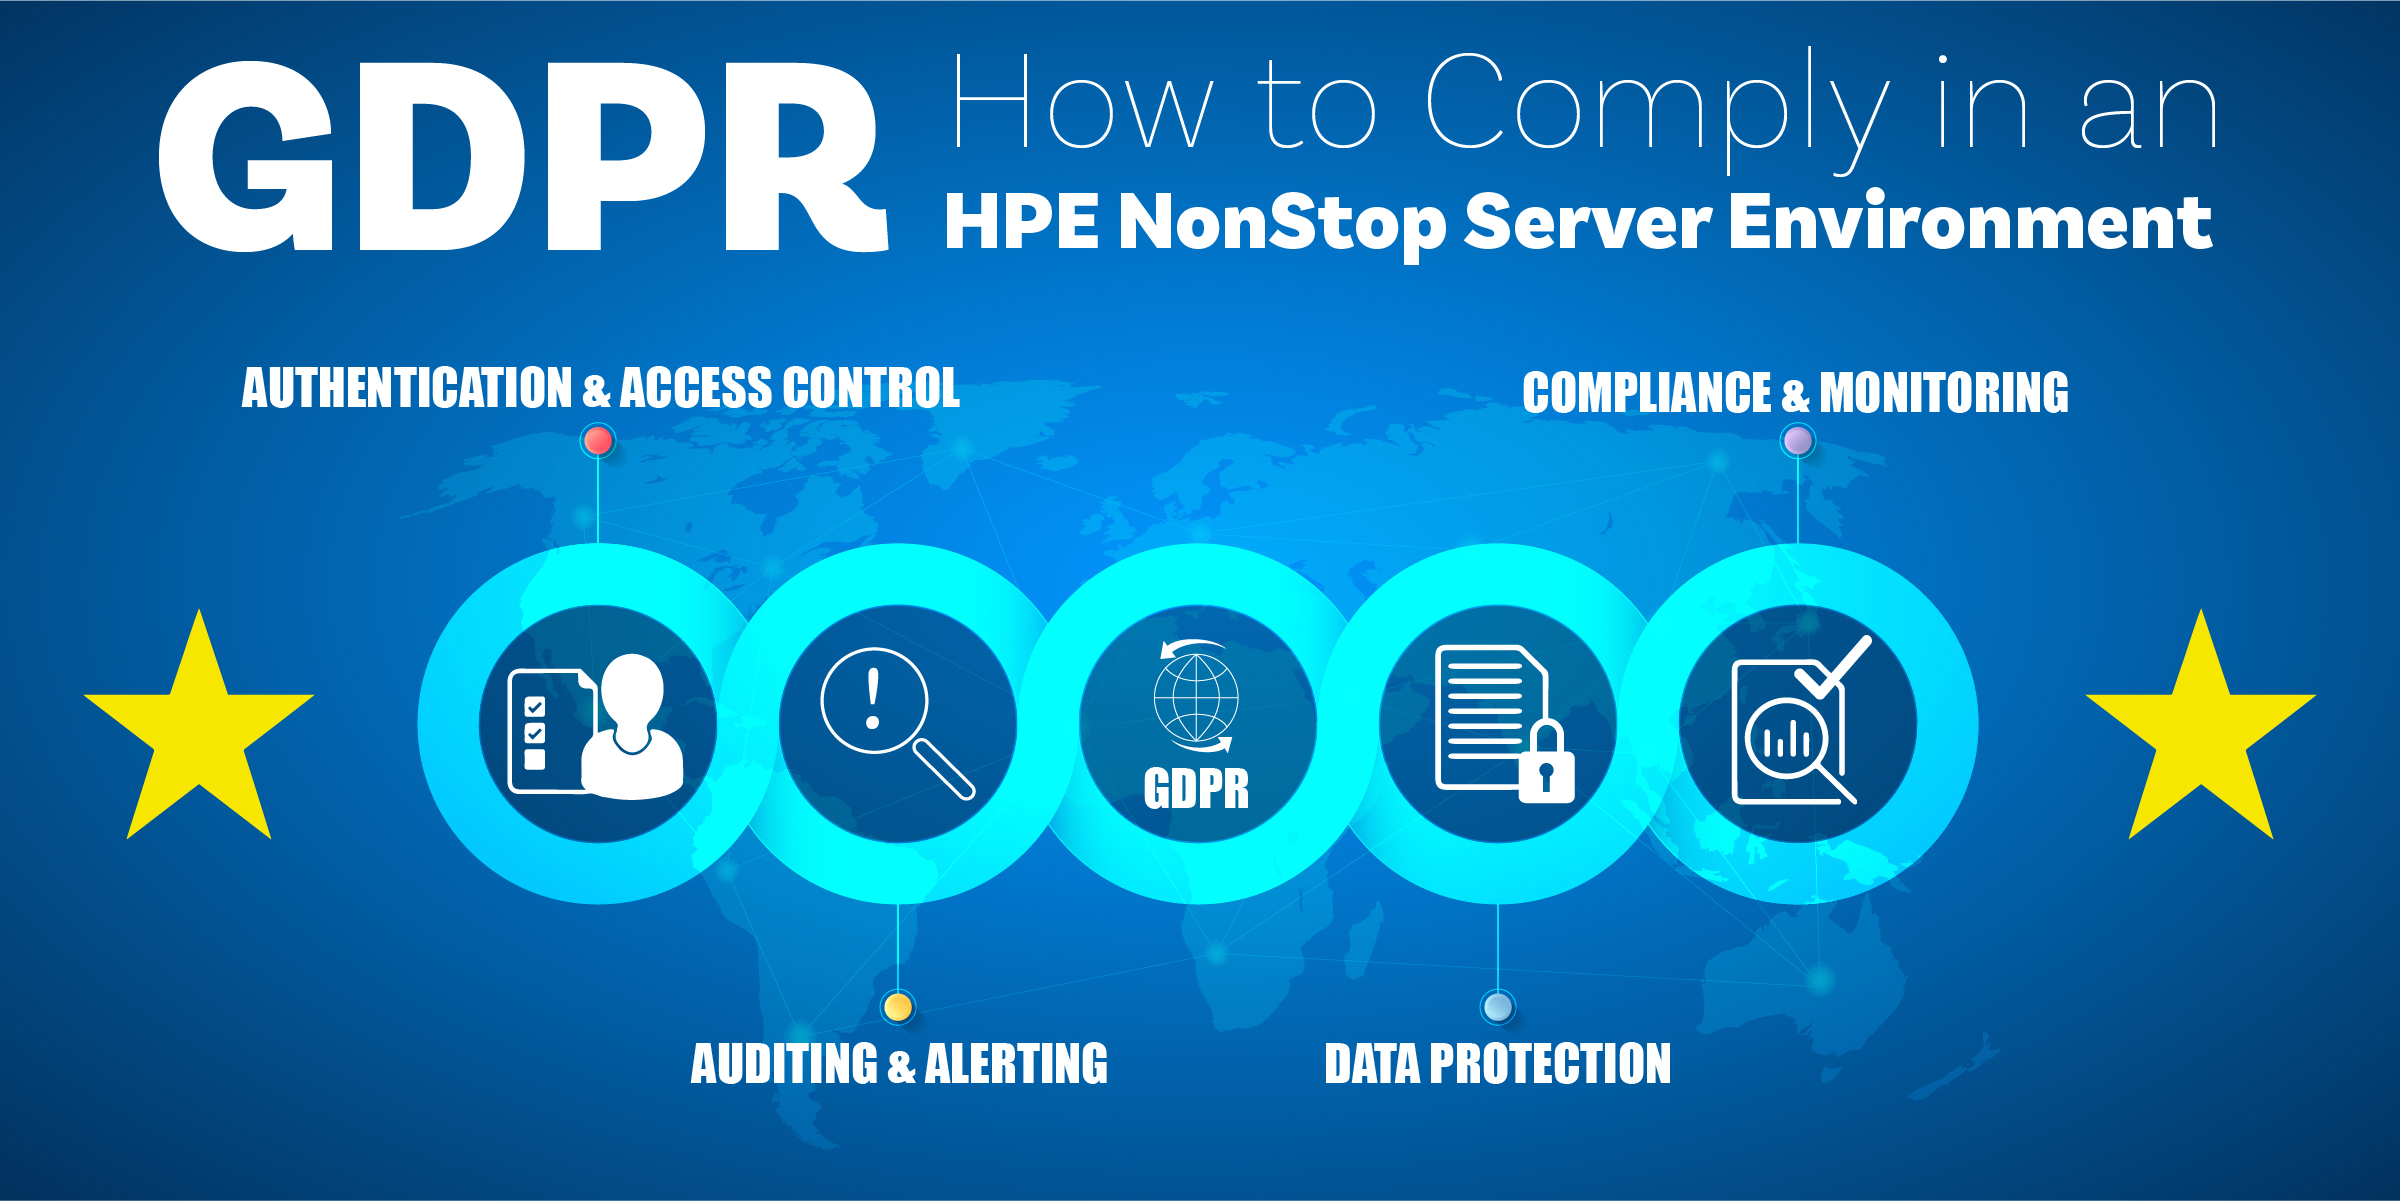 Gdpr How To Comply In An Hpe Nonstop Server Environment Xypro Data Security Policy Template Sample What Is The General Protection